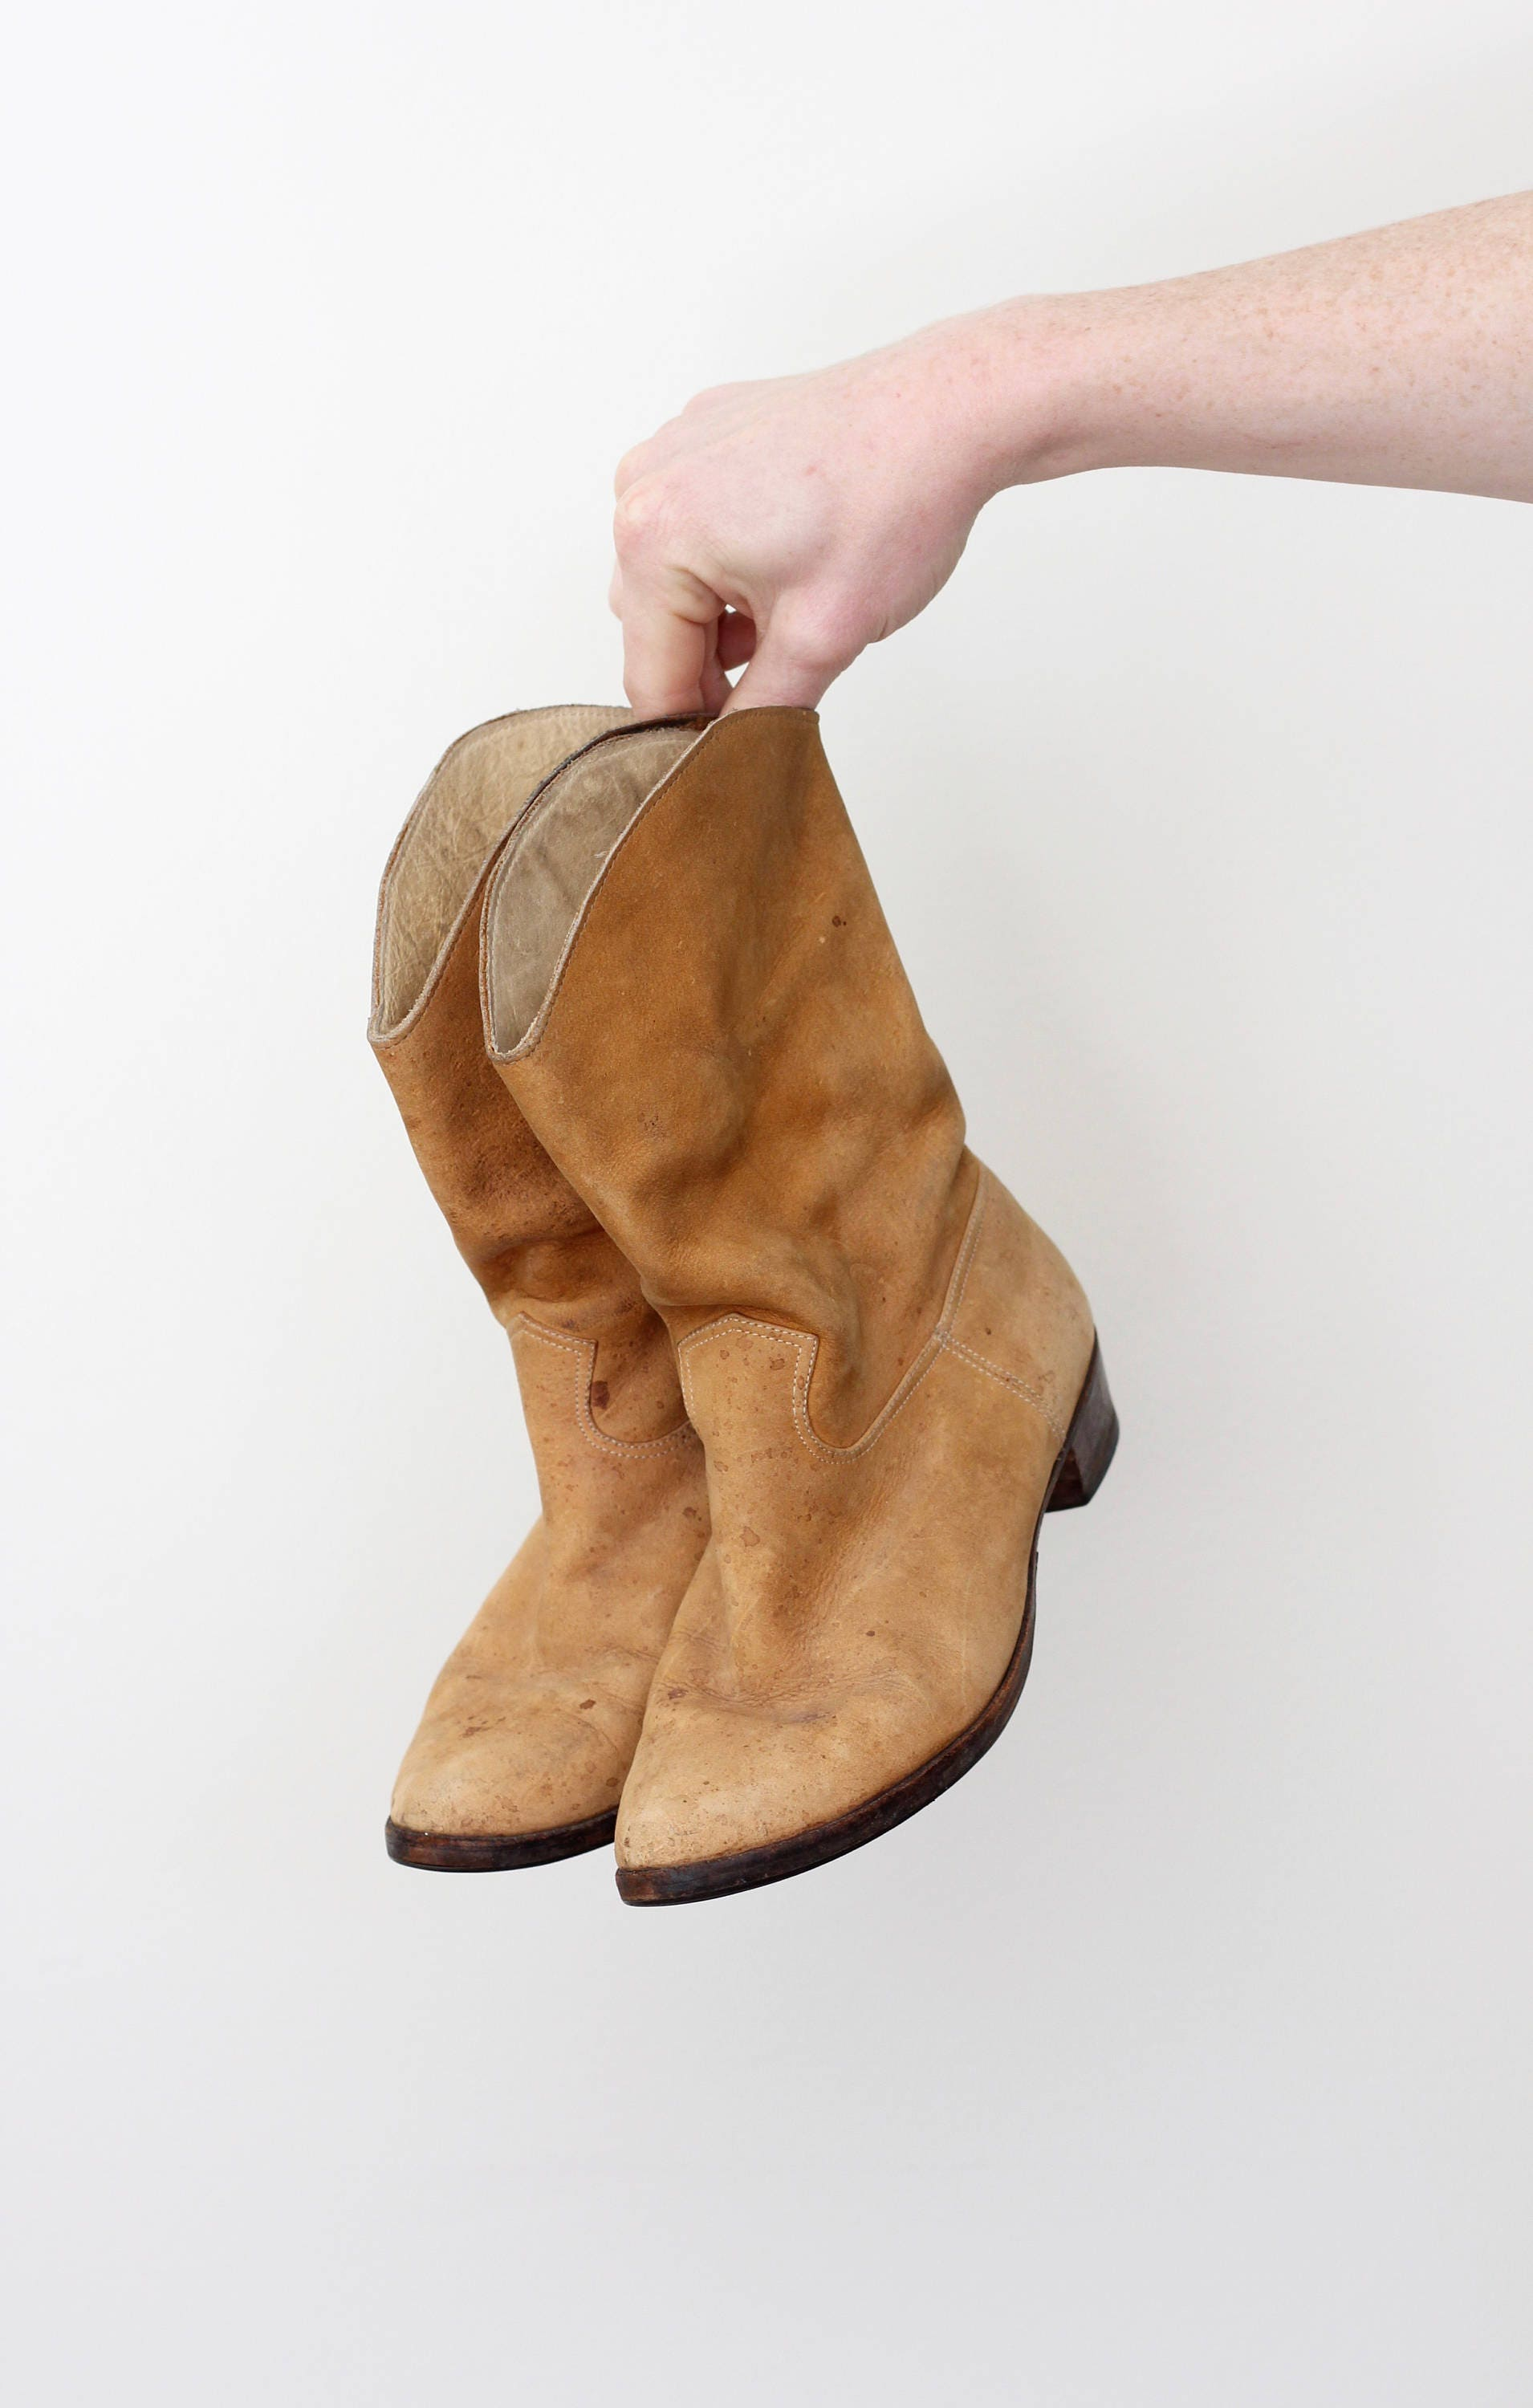 347873b9df7 Women's Suede Cowboy Boots Size 6 Leather Camel Light Brown ...